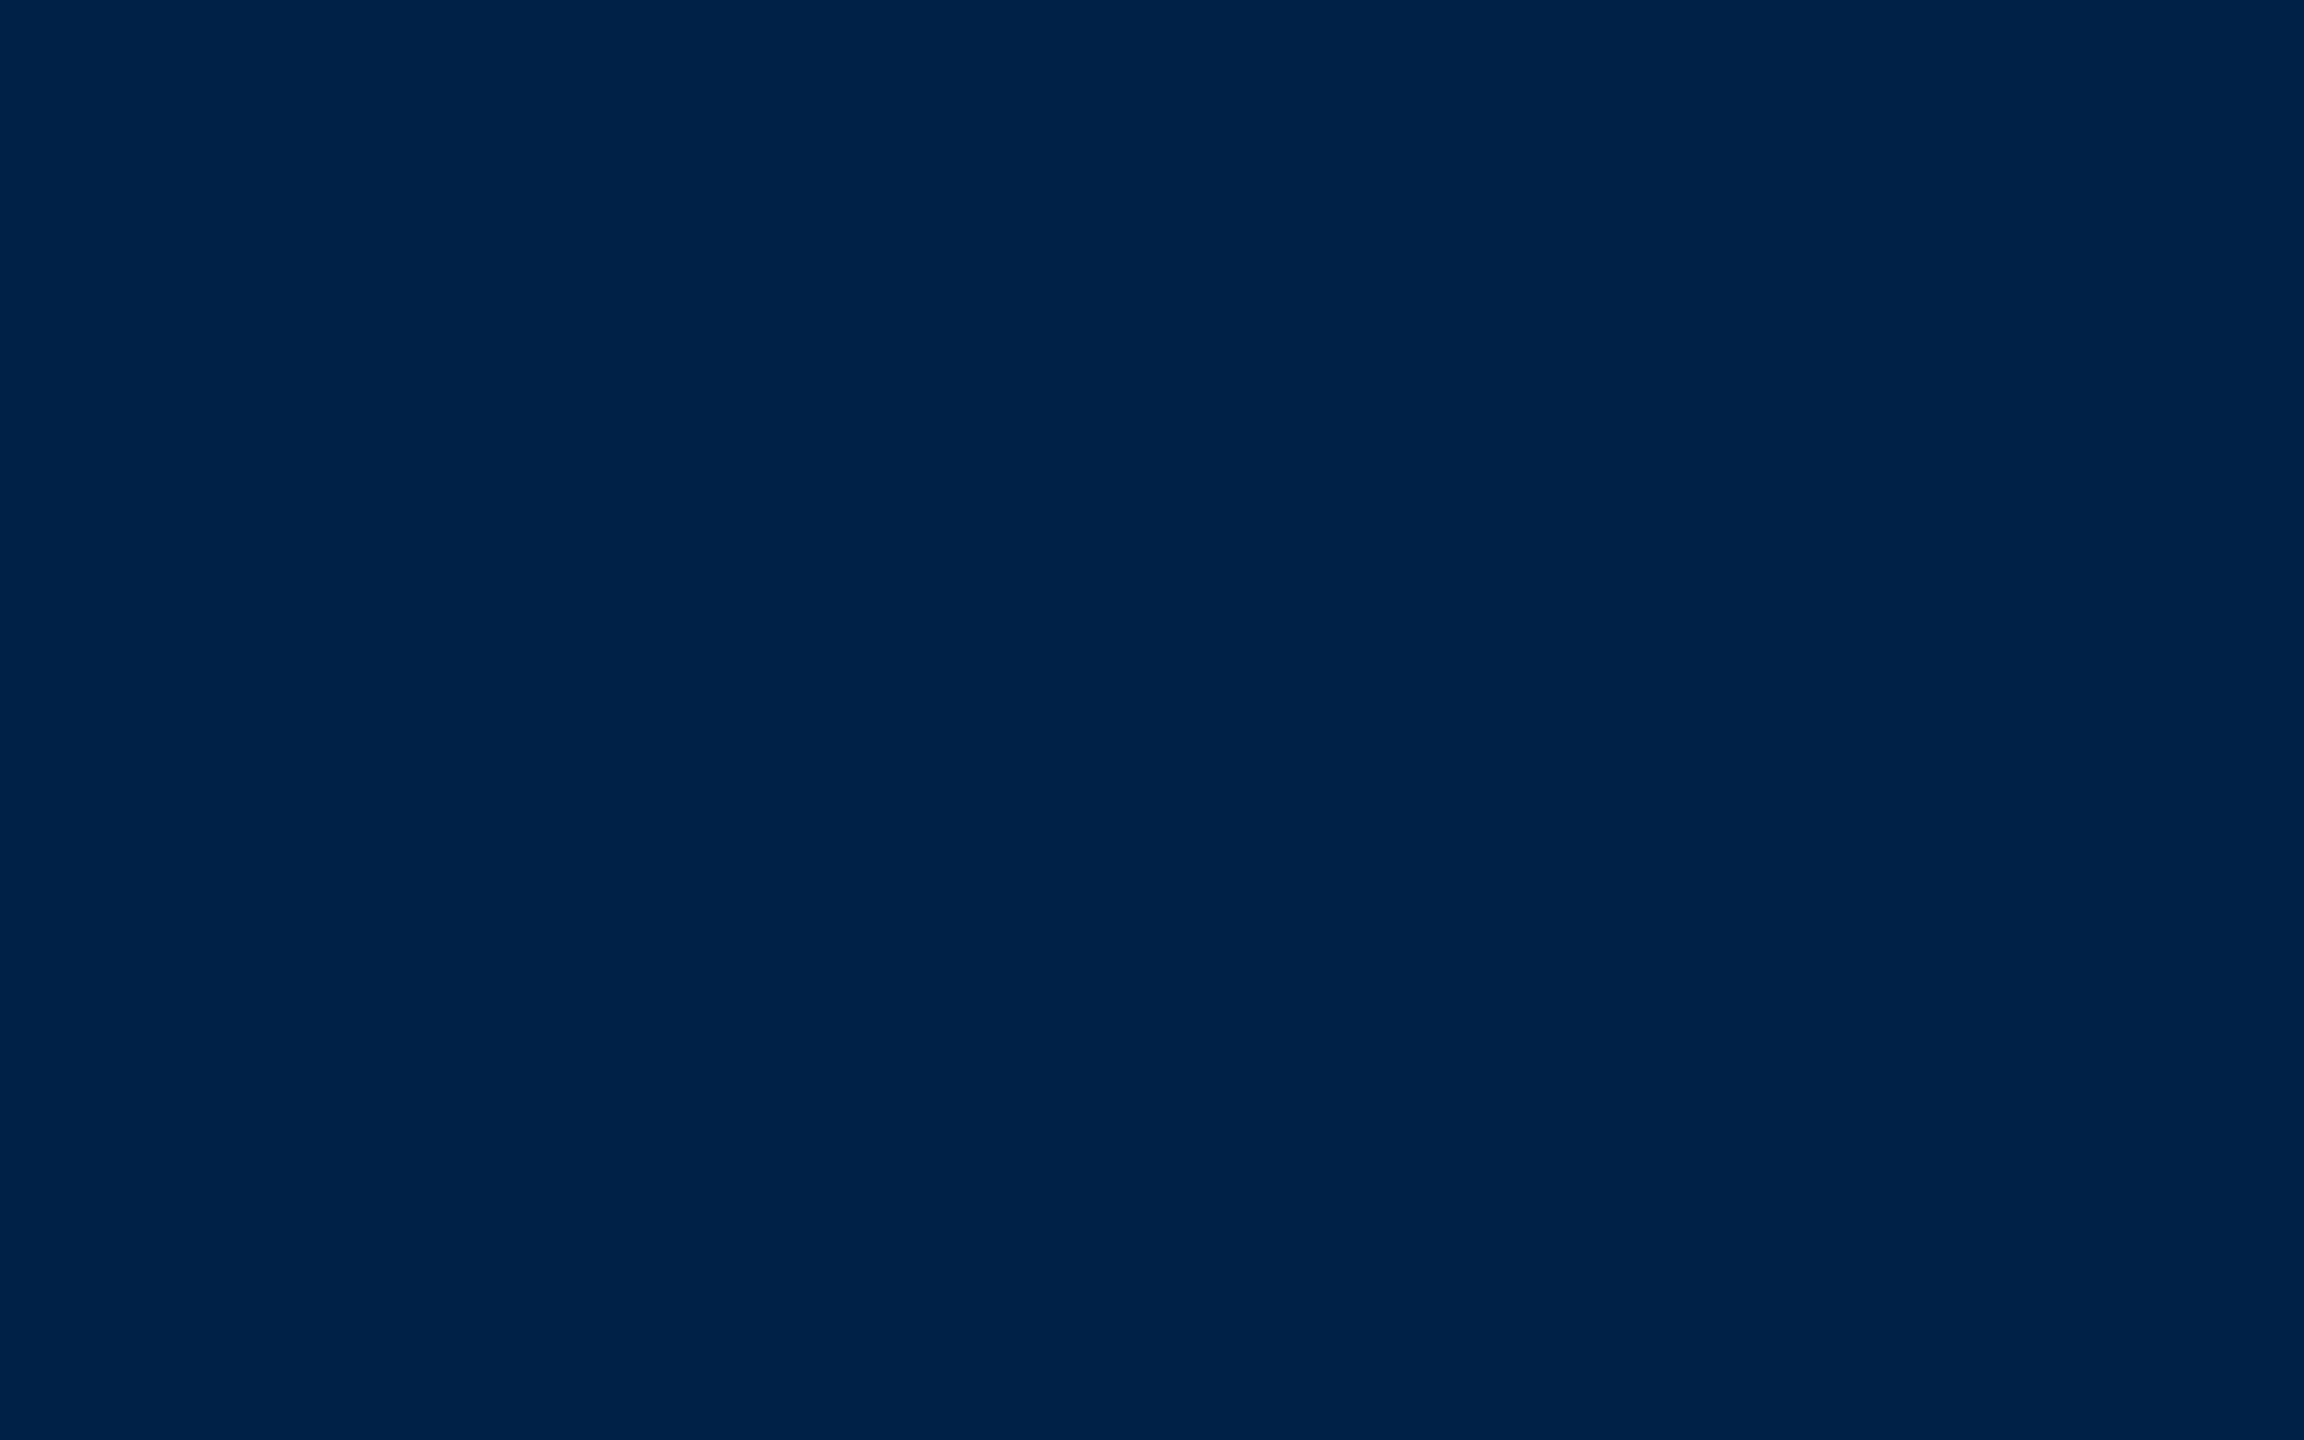 2304x1440 Oxford Blue Solid Color Background